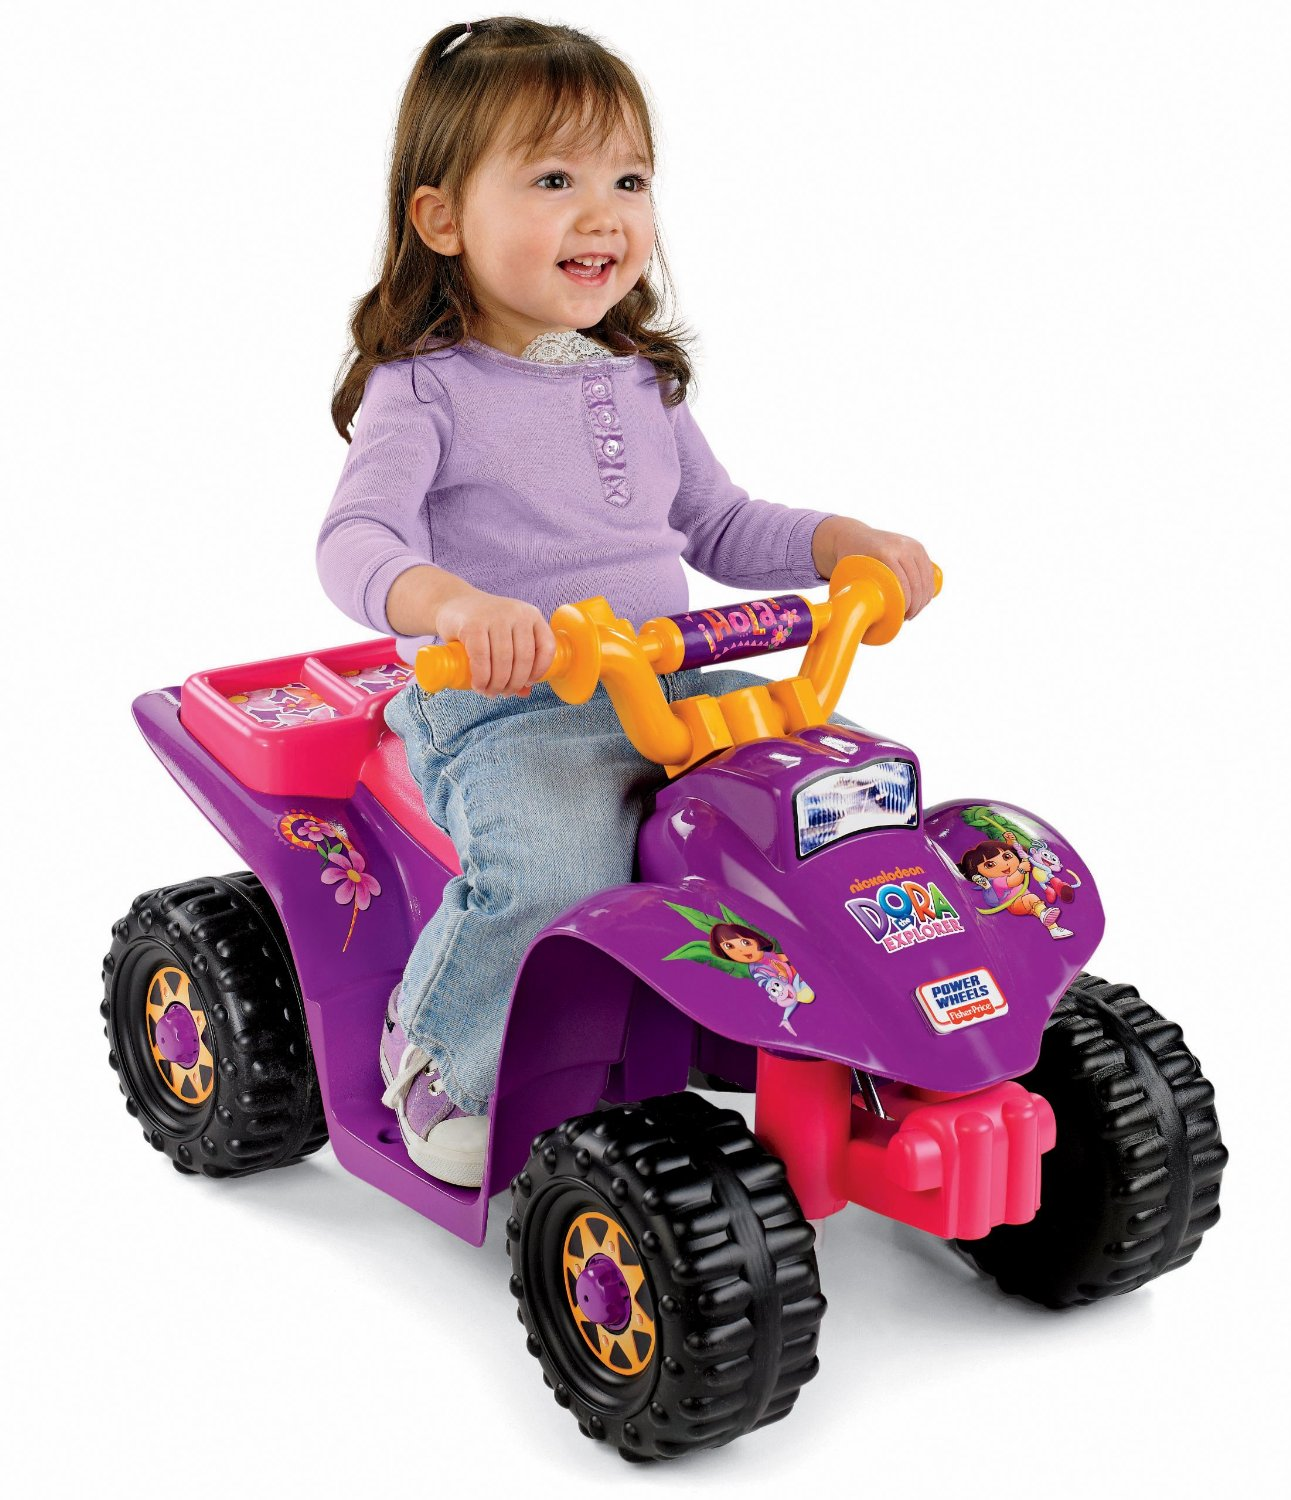 Toys For Girls 1 3 : Best gift ideas for three year old girls a guide